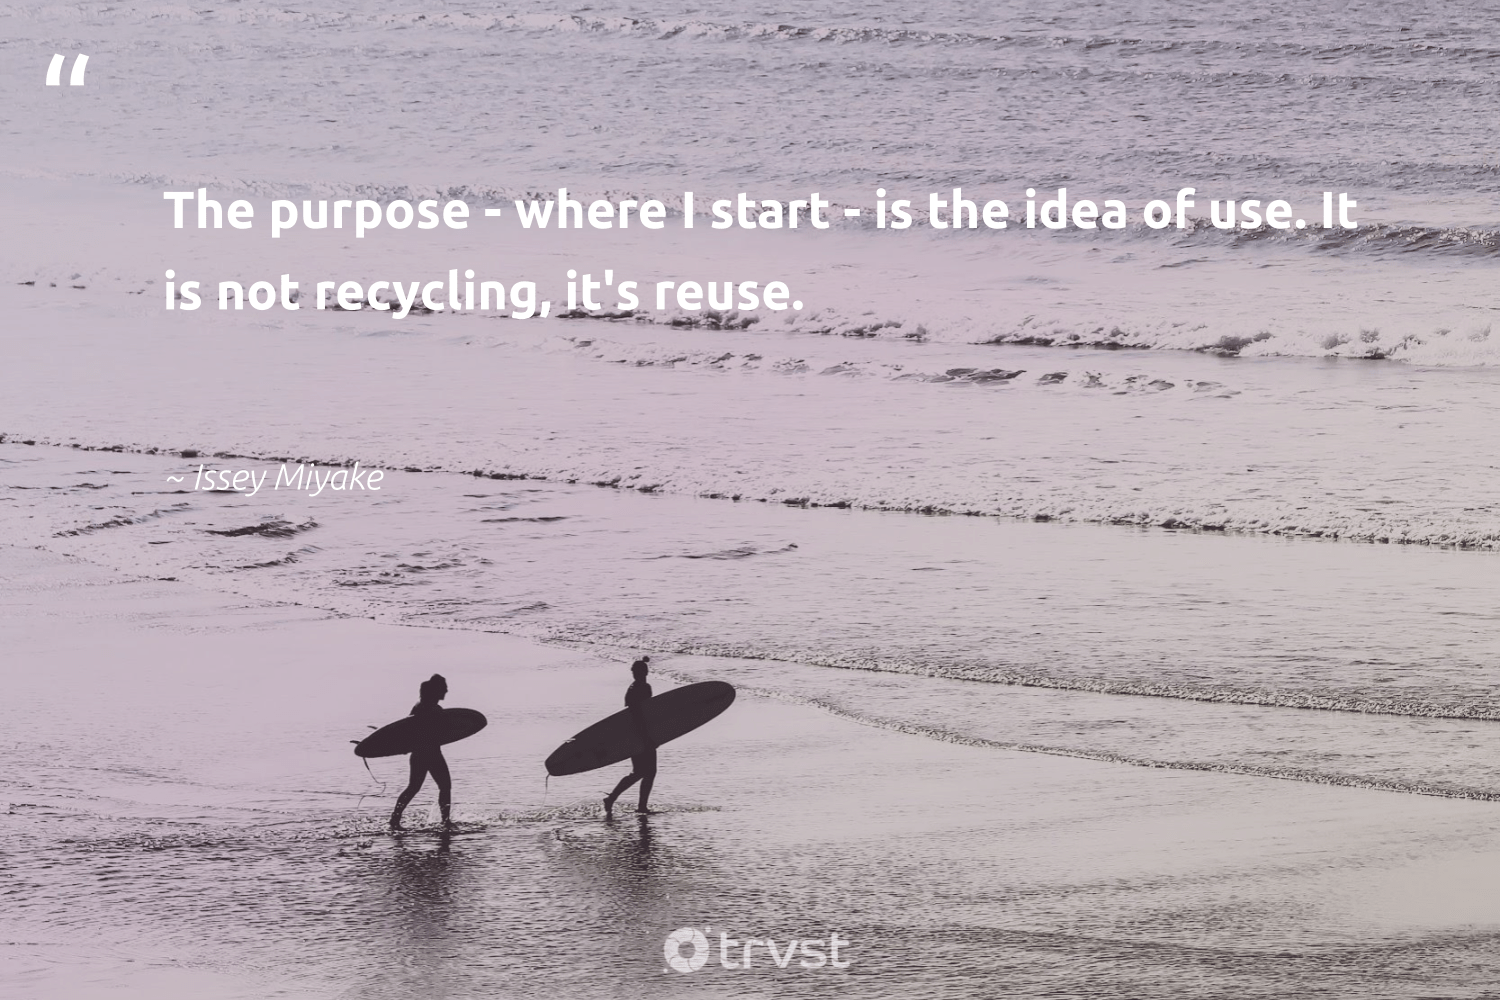 """""""The purpose - where I start - is the idea of use. It is not recycling, it's reuse.""""  - Issey Miyake #trvst #quotes #recycling #reuse #purpose #upcycle #refurbished #sustainability #environmentallyfriendly #thinkgreen #reduce #repair"""